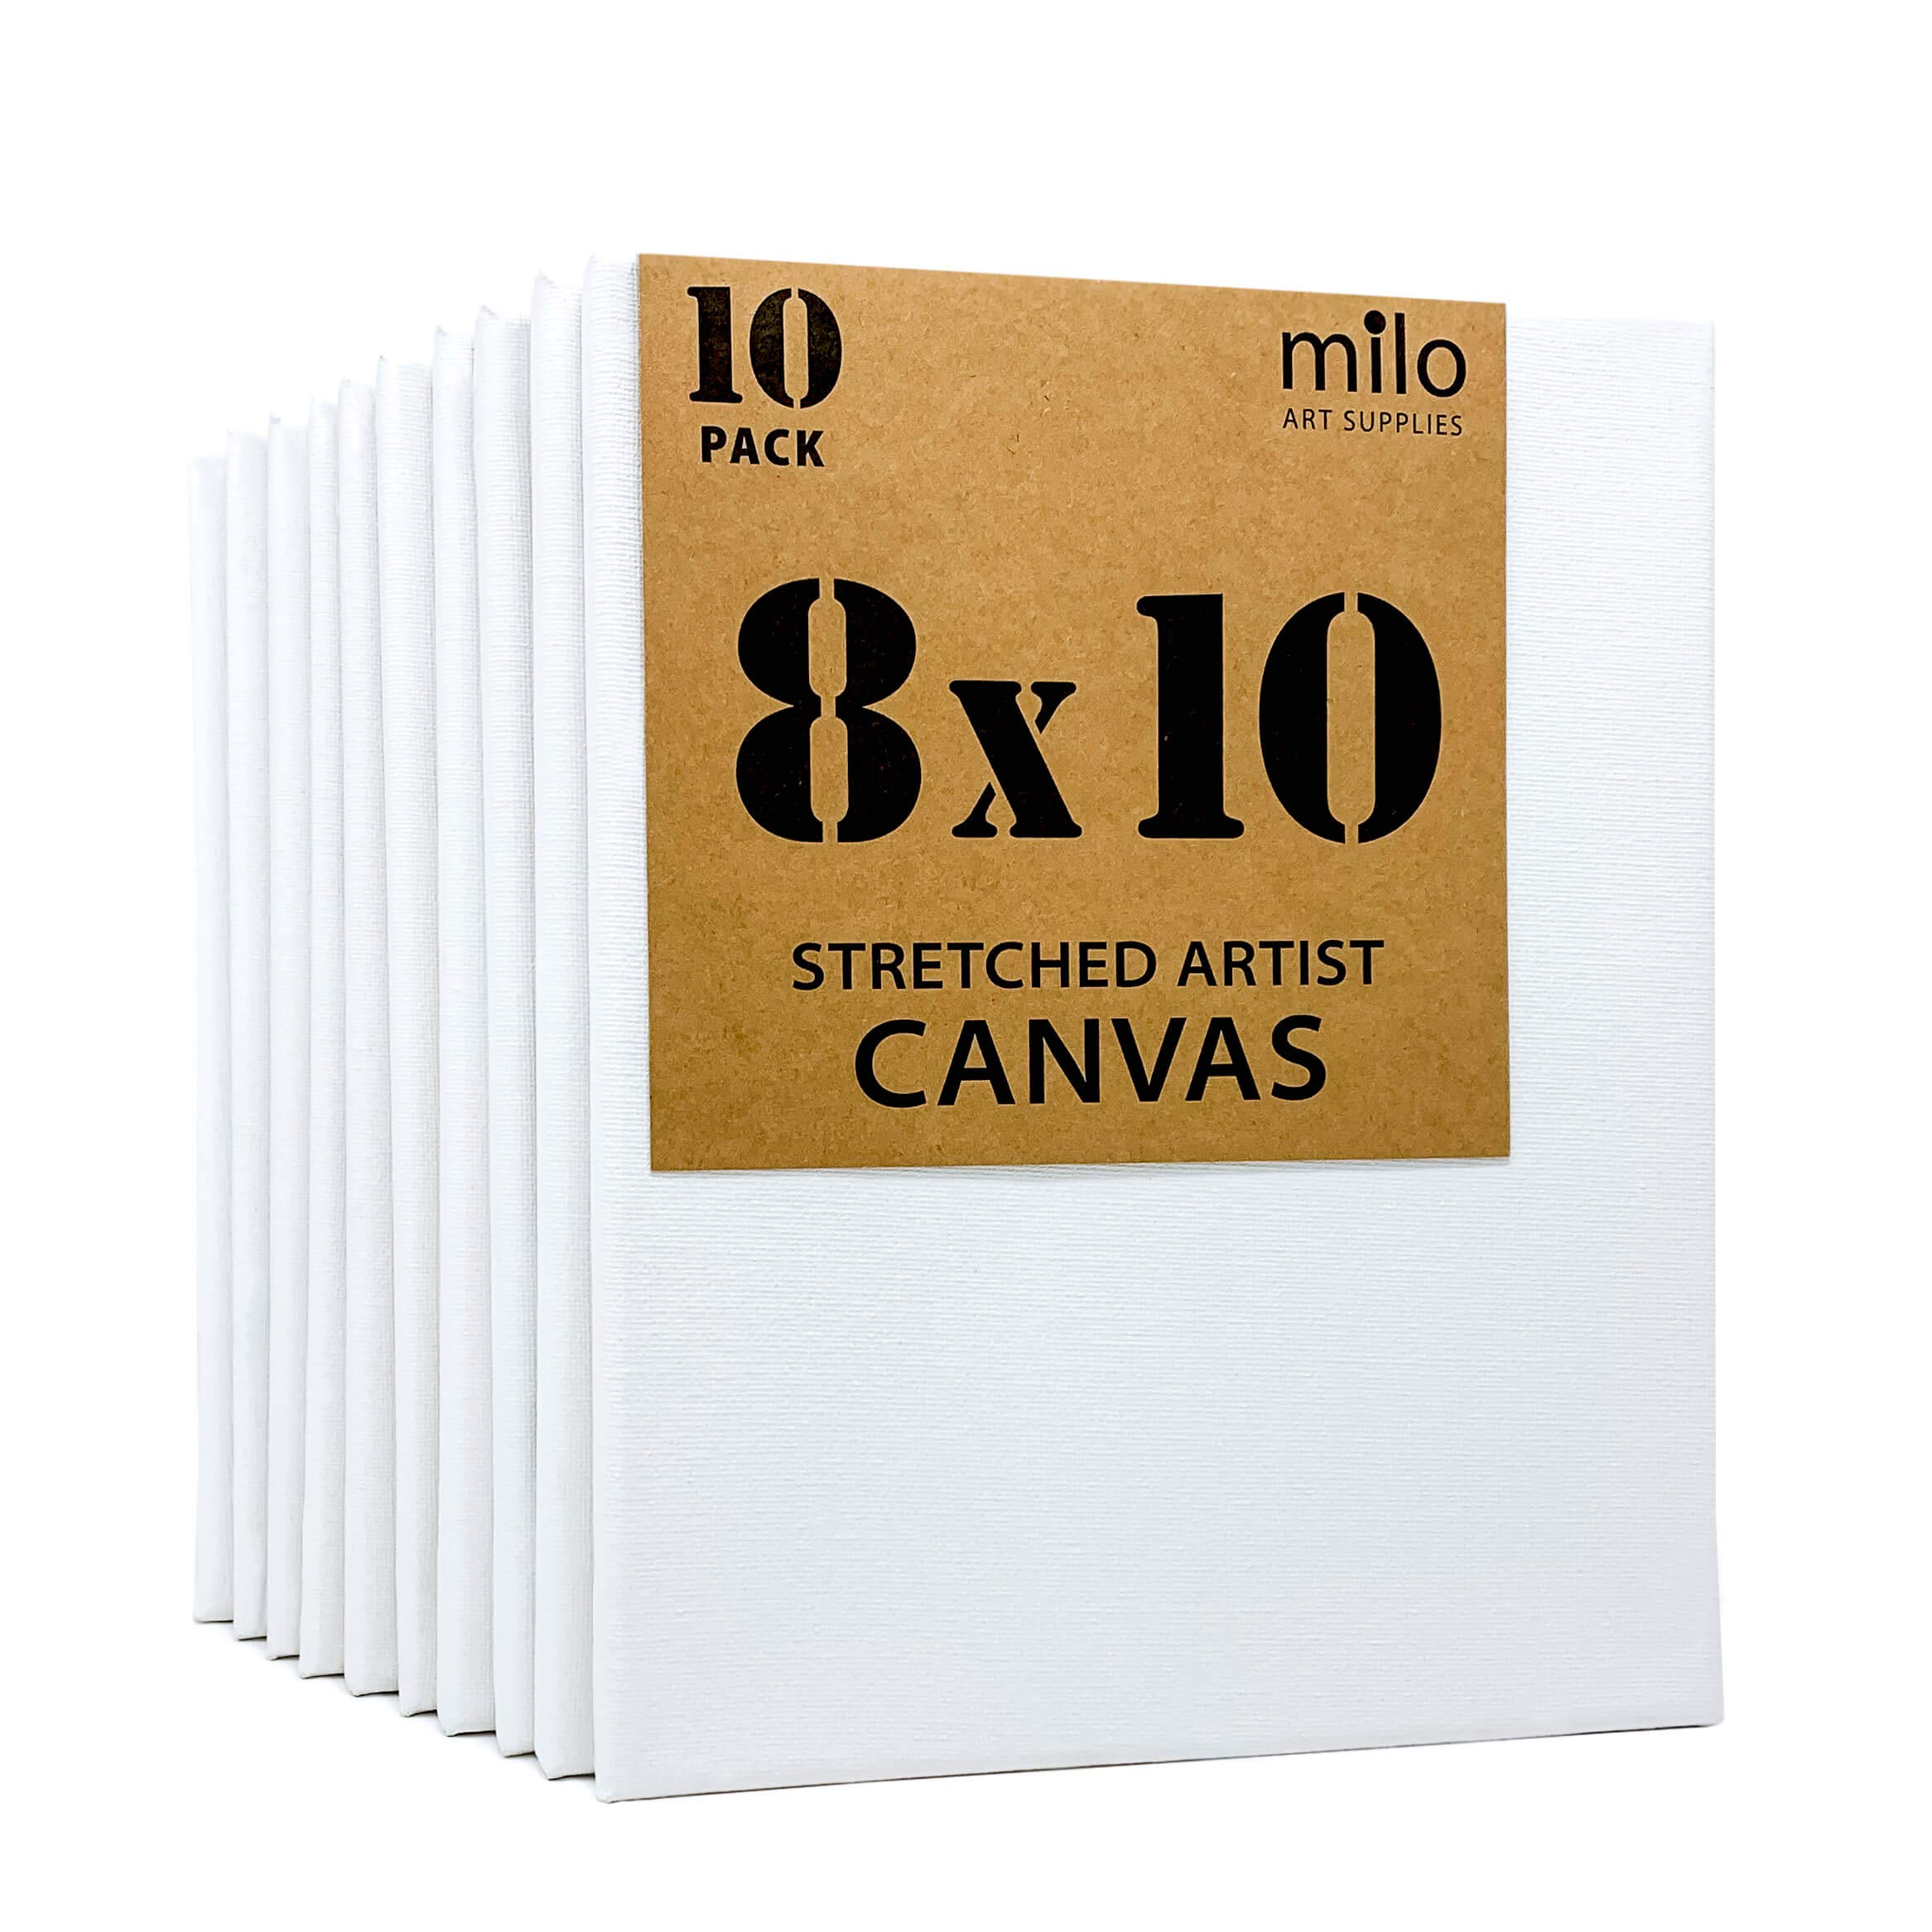 """MILO   8x10"""" Stretched Artist Canvas Value Pack of 10   Primed Cotton Art Canvas Set for Painting   Ready to Paint Art Supplies   10 White Blank Canvases"""